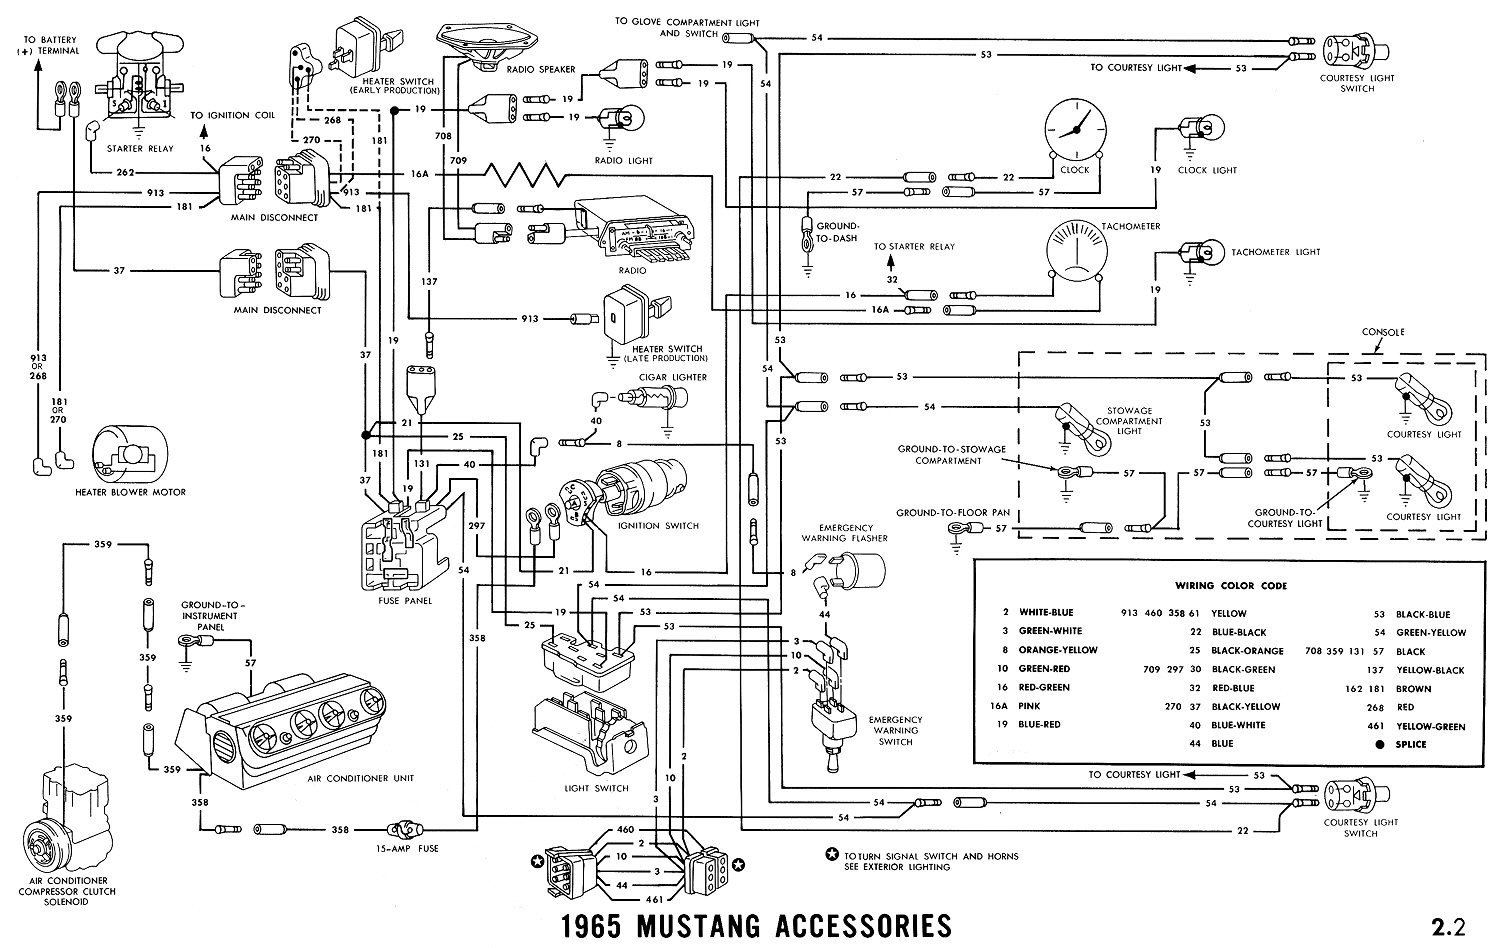 1965i 1965 mustang wiring diagrams average joe restoration 65 mustang engine wiring diagram at soozxer.org